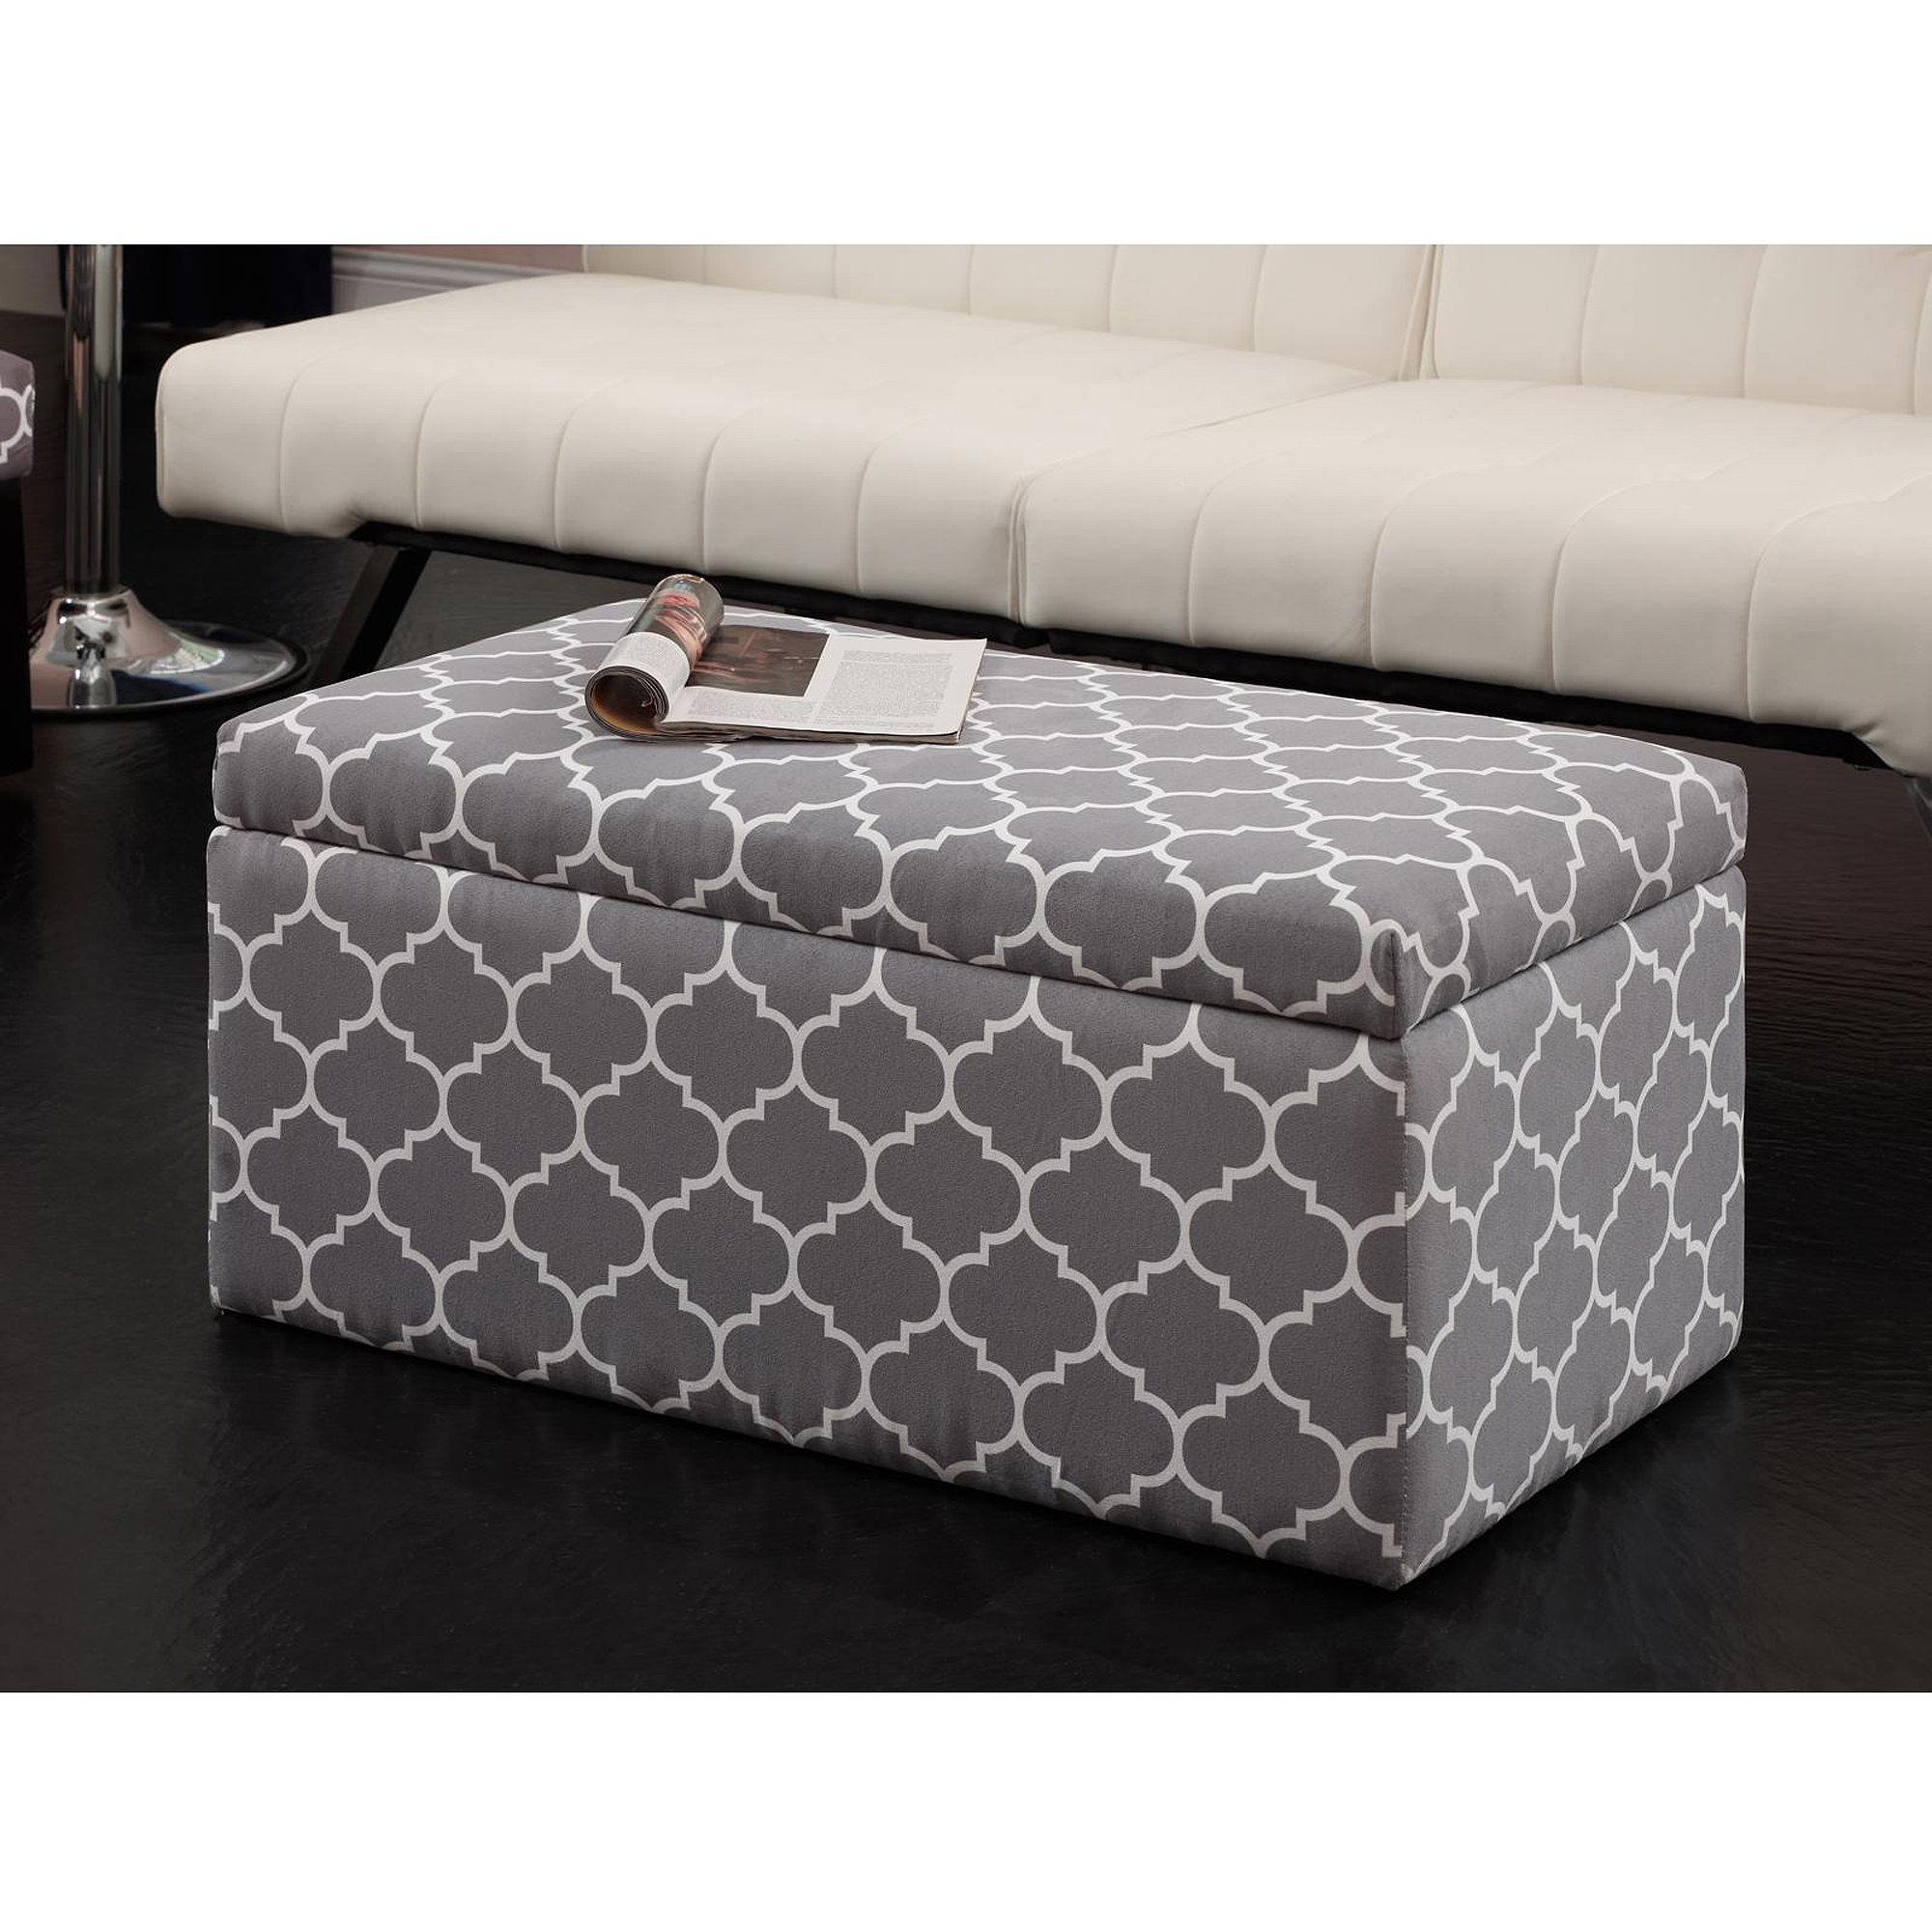 Ordinaire Emily Rectangular Storage Ottoman, Gray/